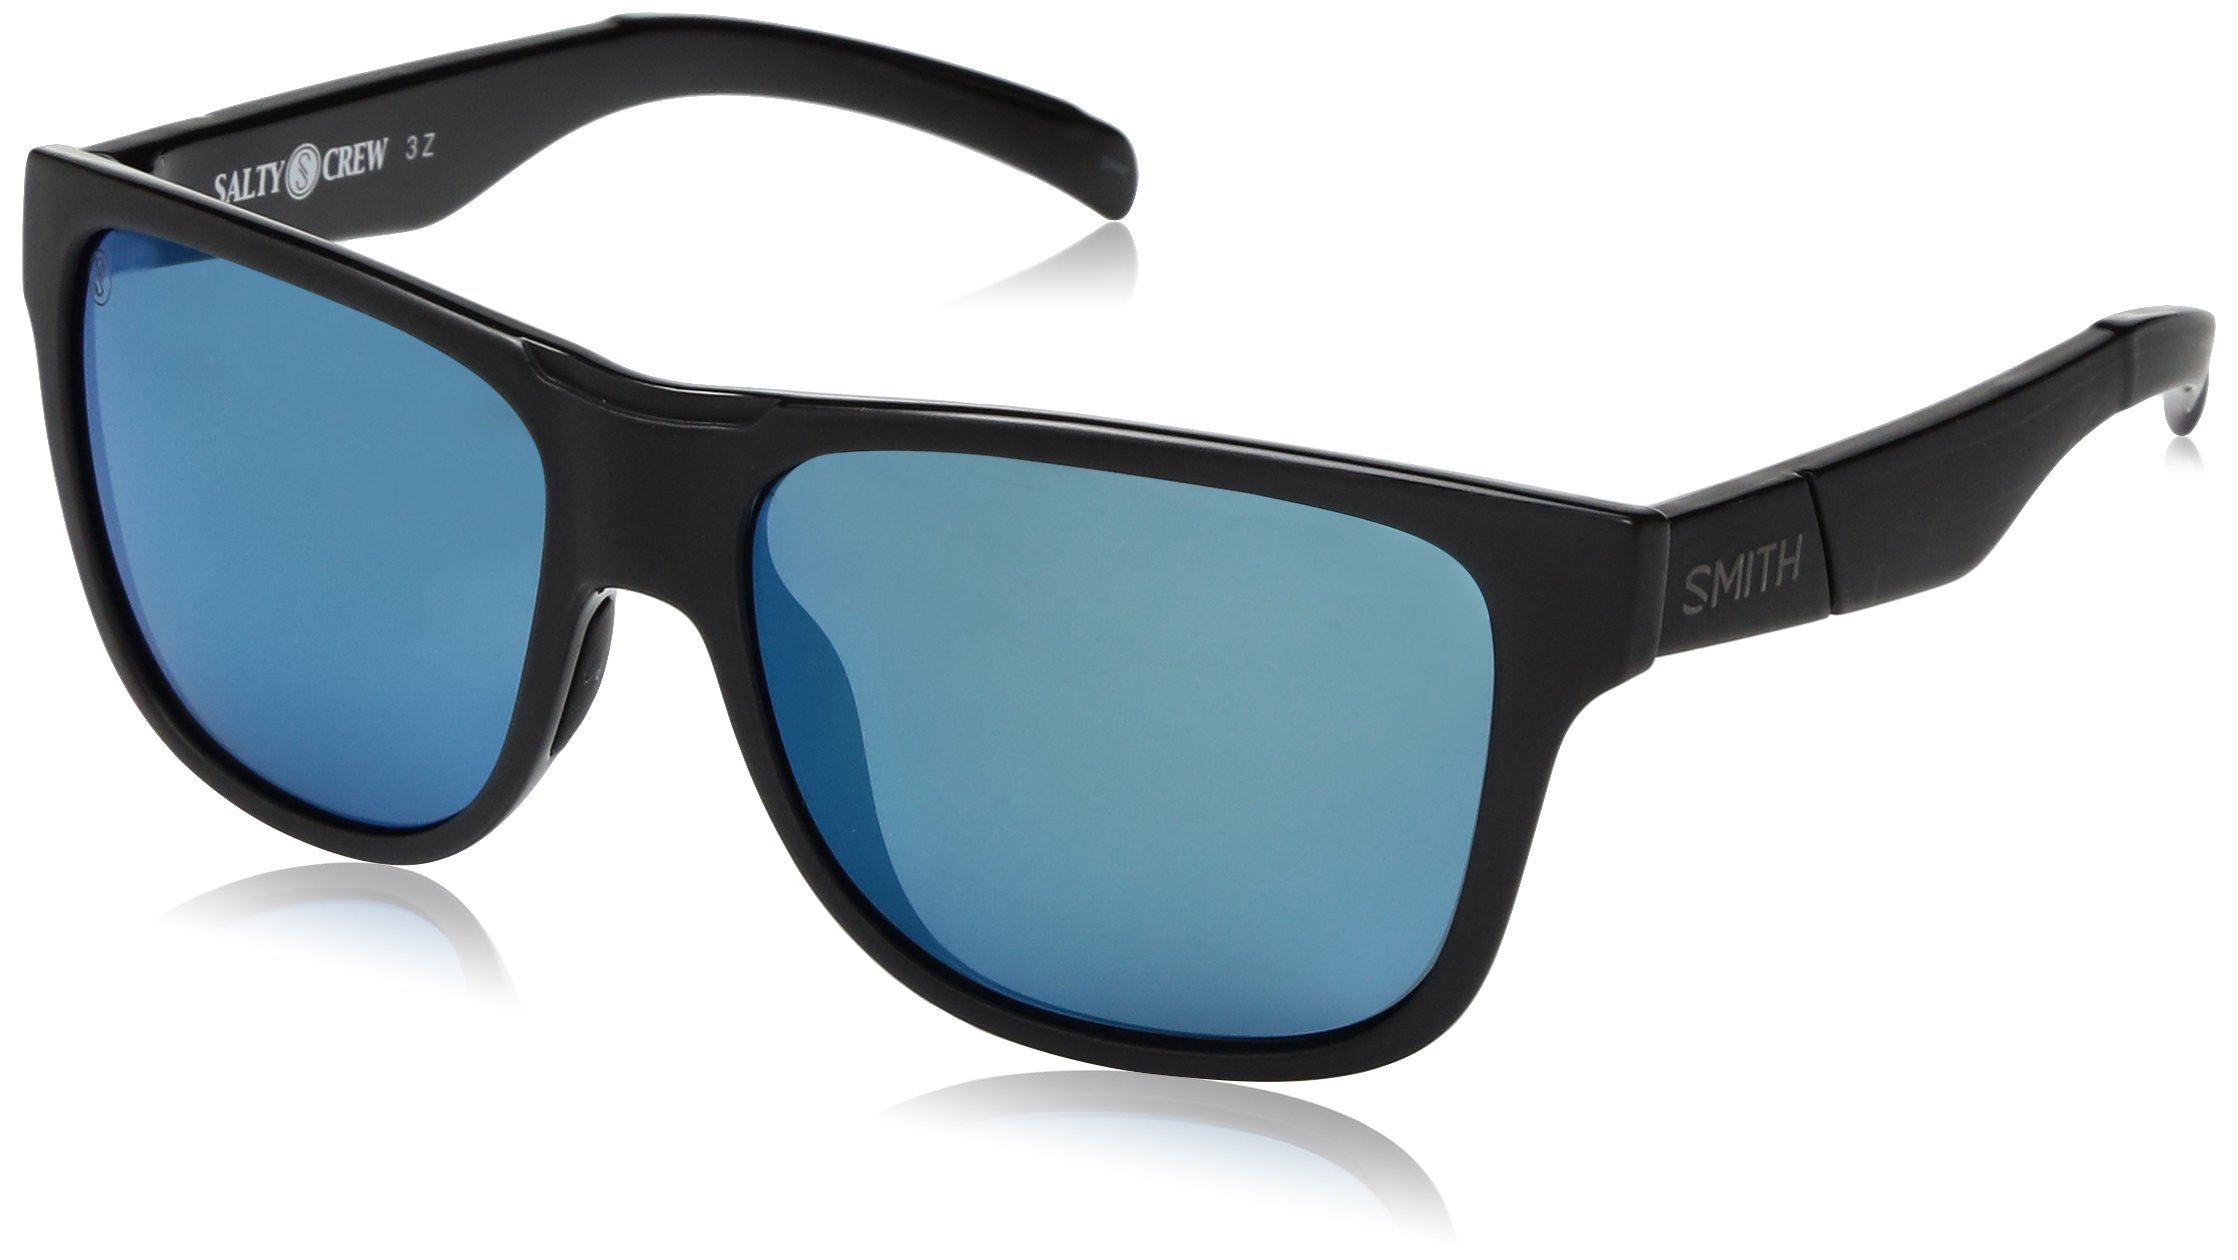 Smith Lowdown XL ChromaPop Polarized Sunglasses by Smith Optics